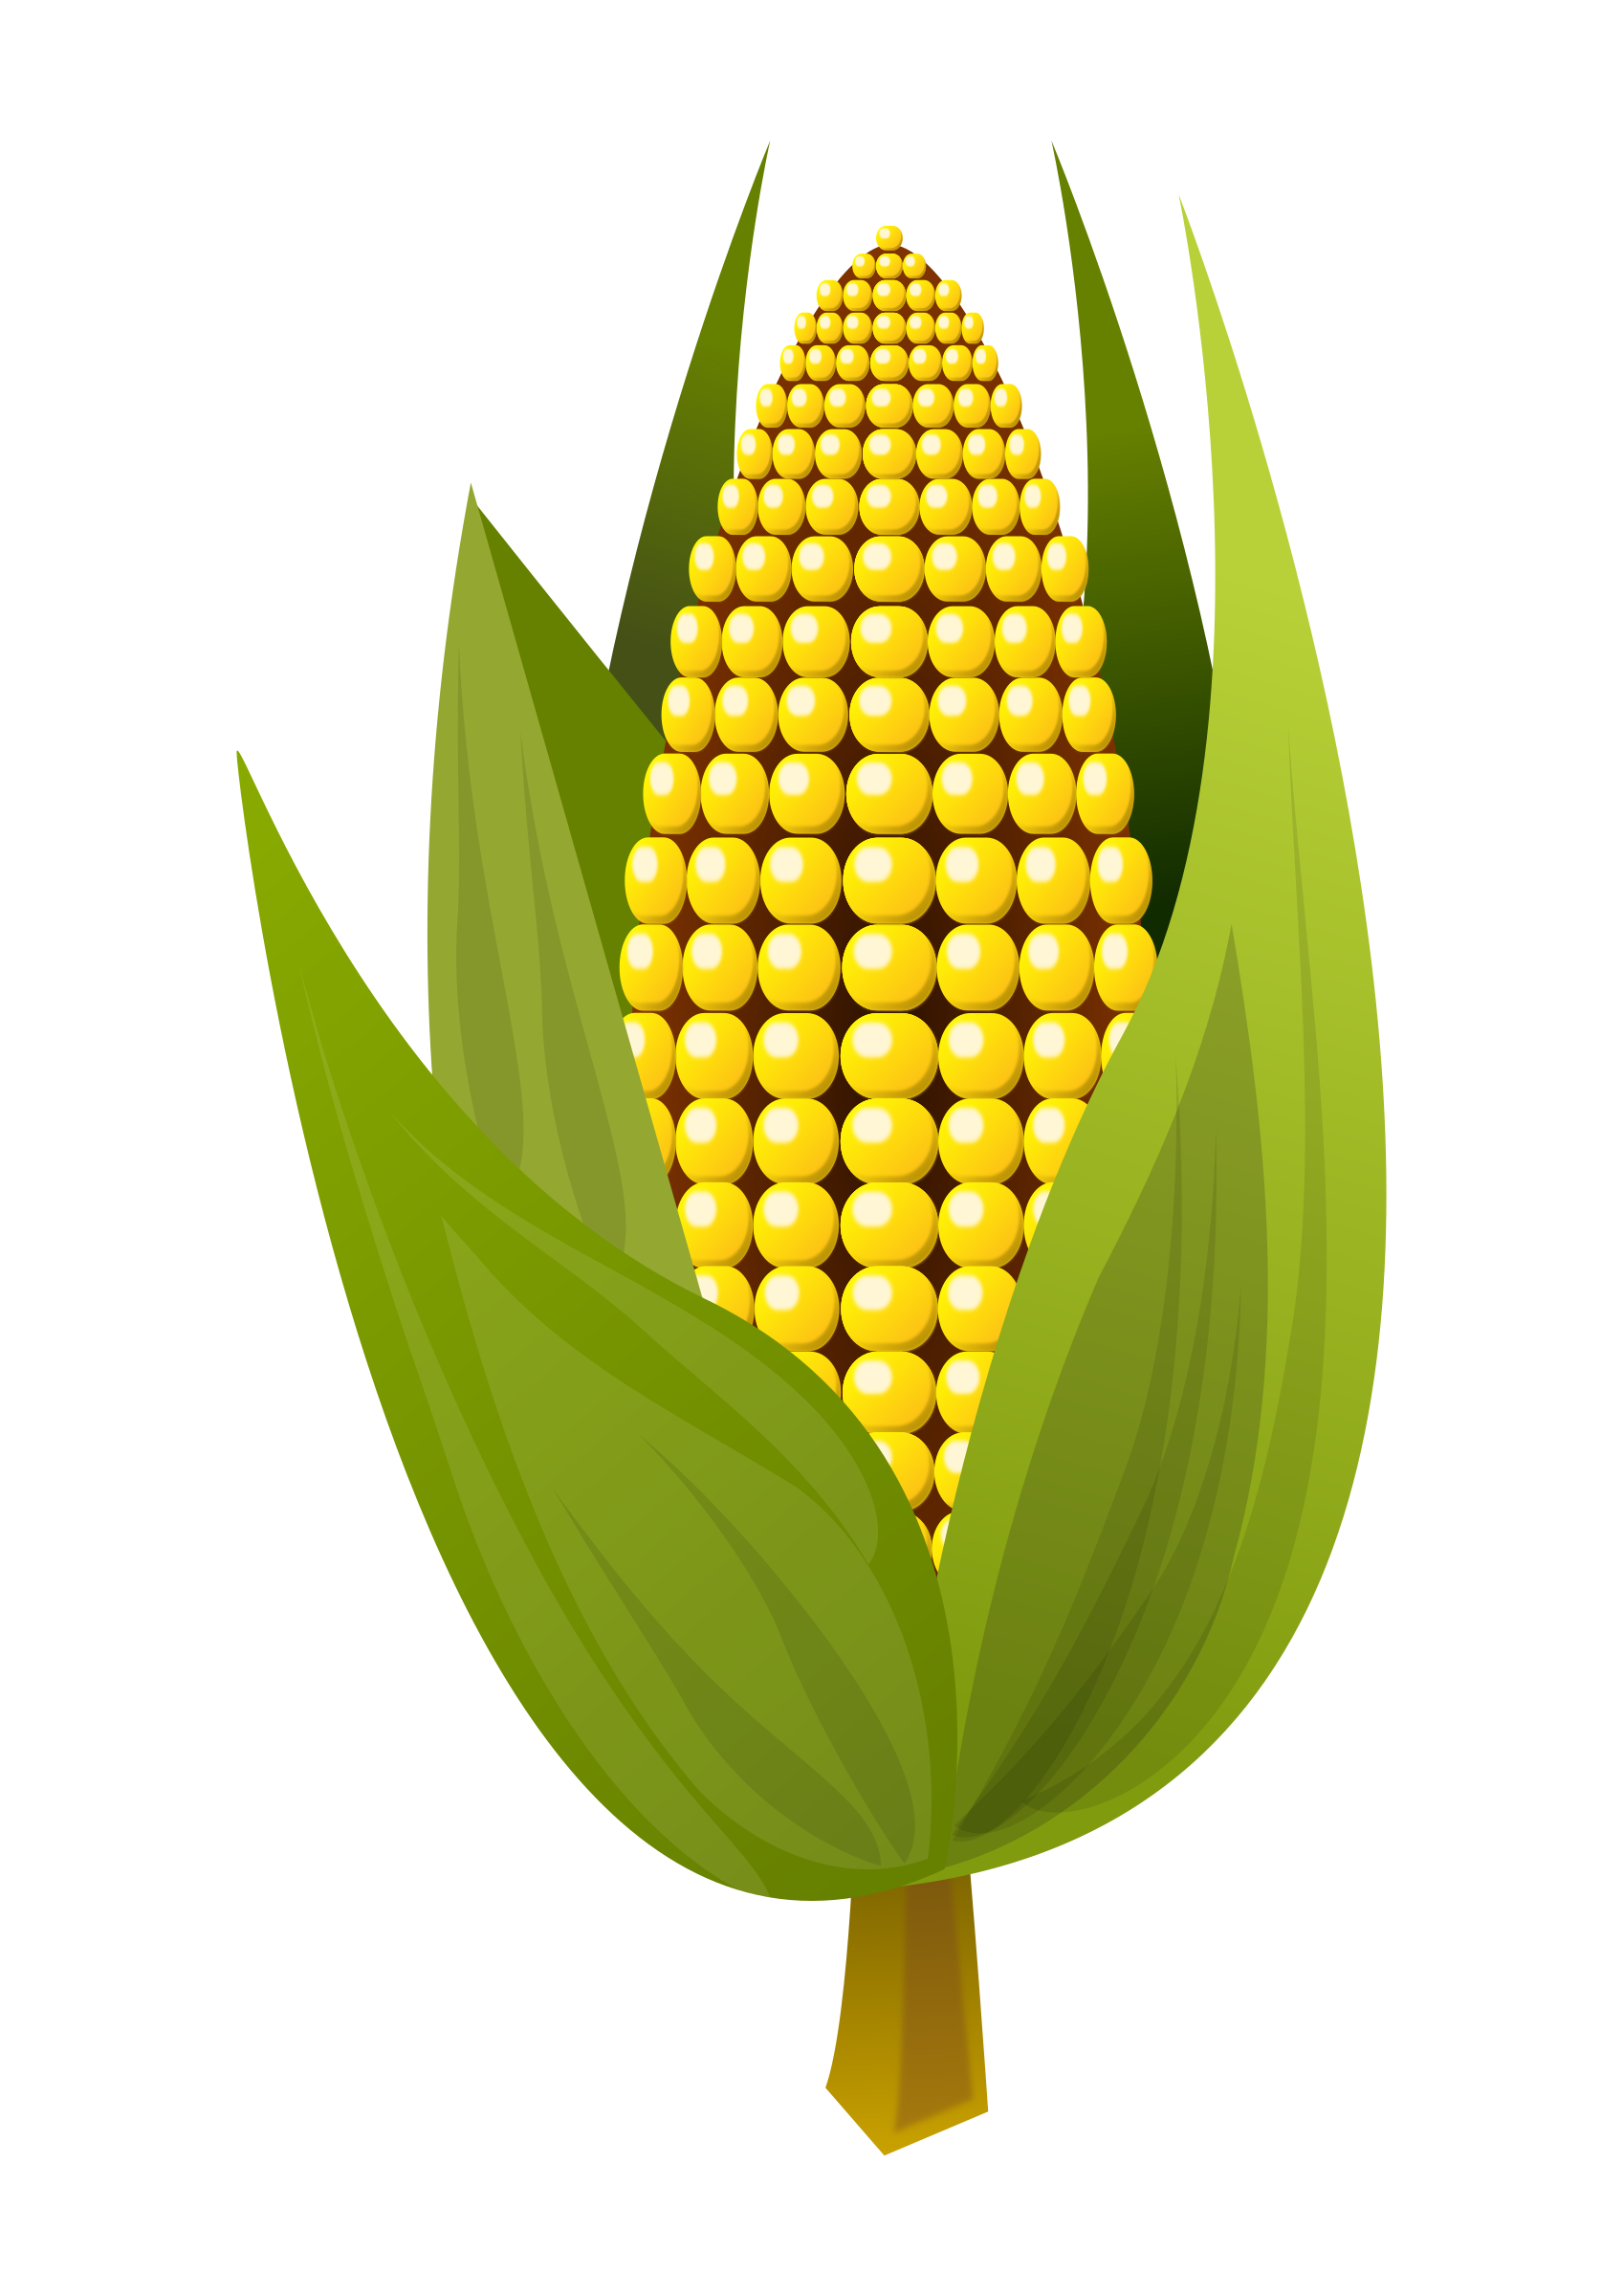 Ear Of Corn Clipart - Free Transparent PNG Clipart Images Download